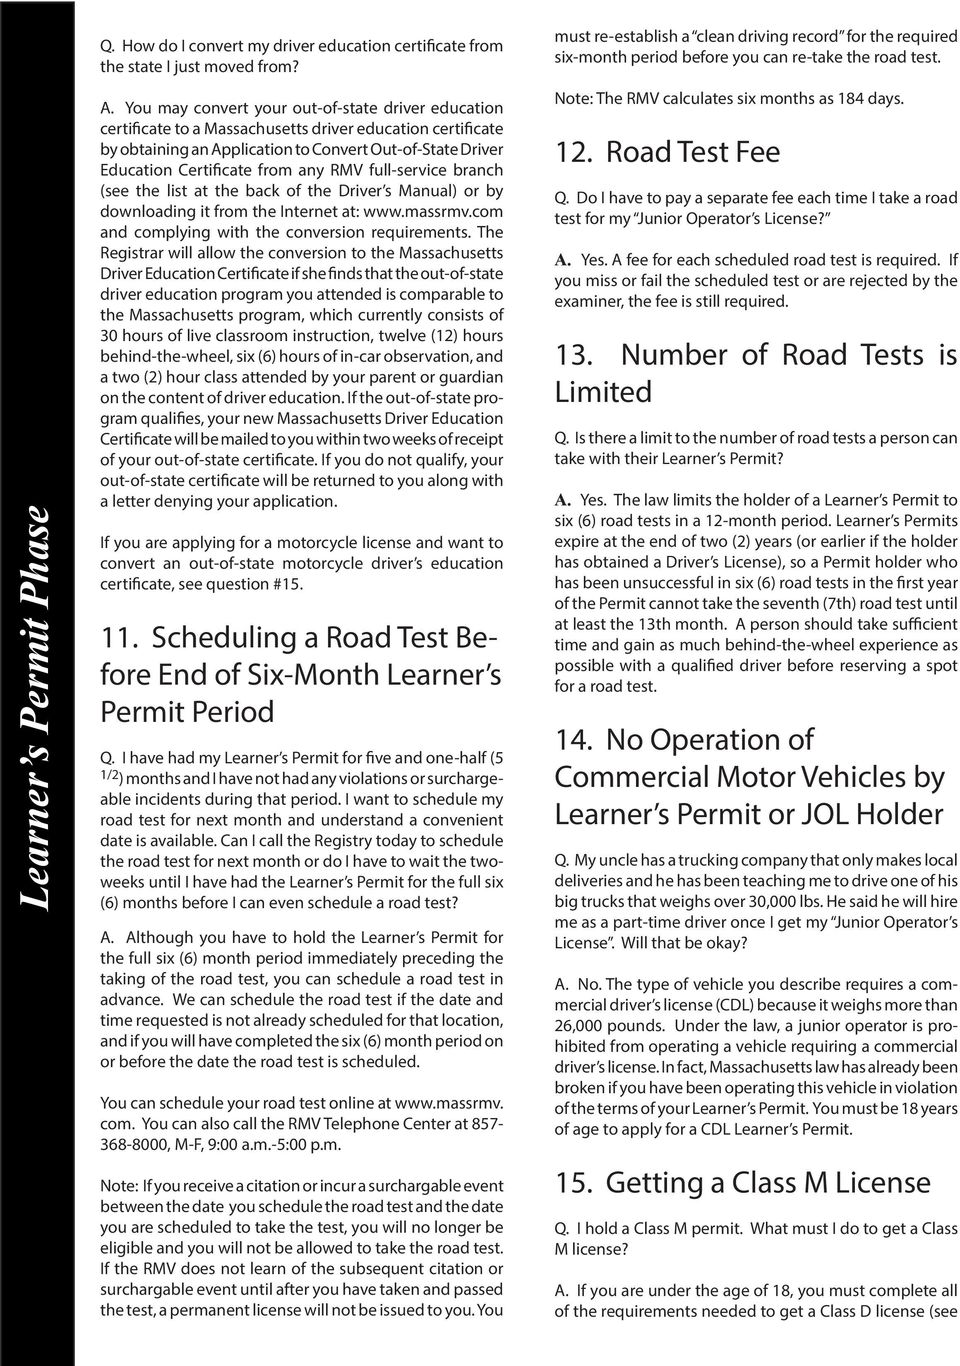 FAQs About Learner s Permits & Junior Operator Licenses  Q & A Index